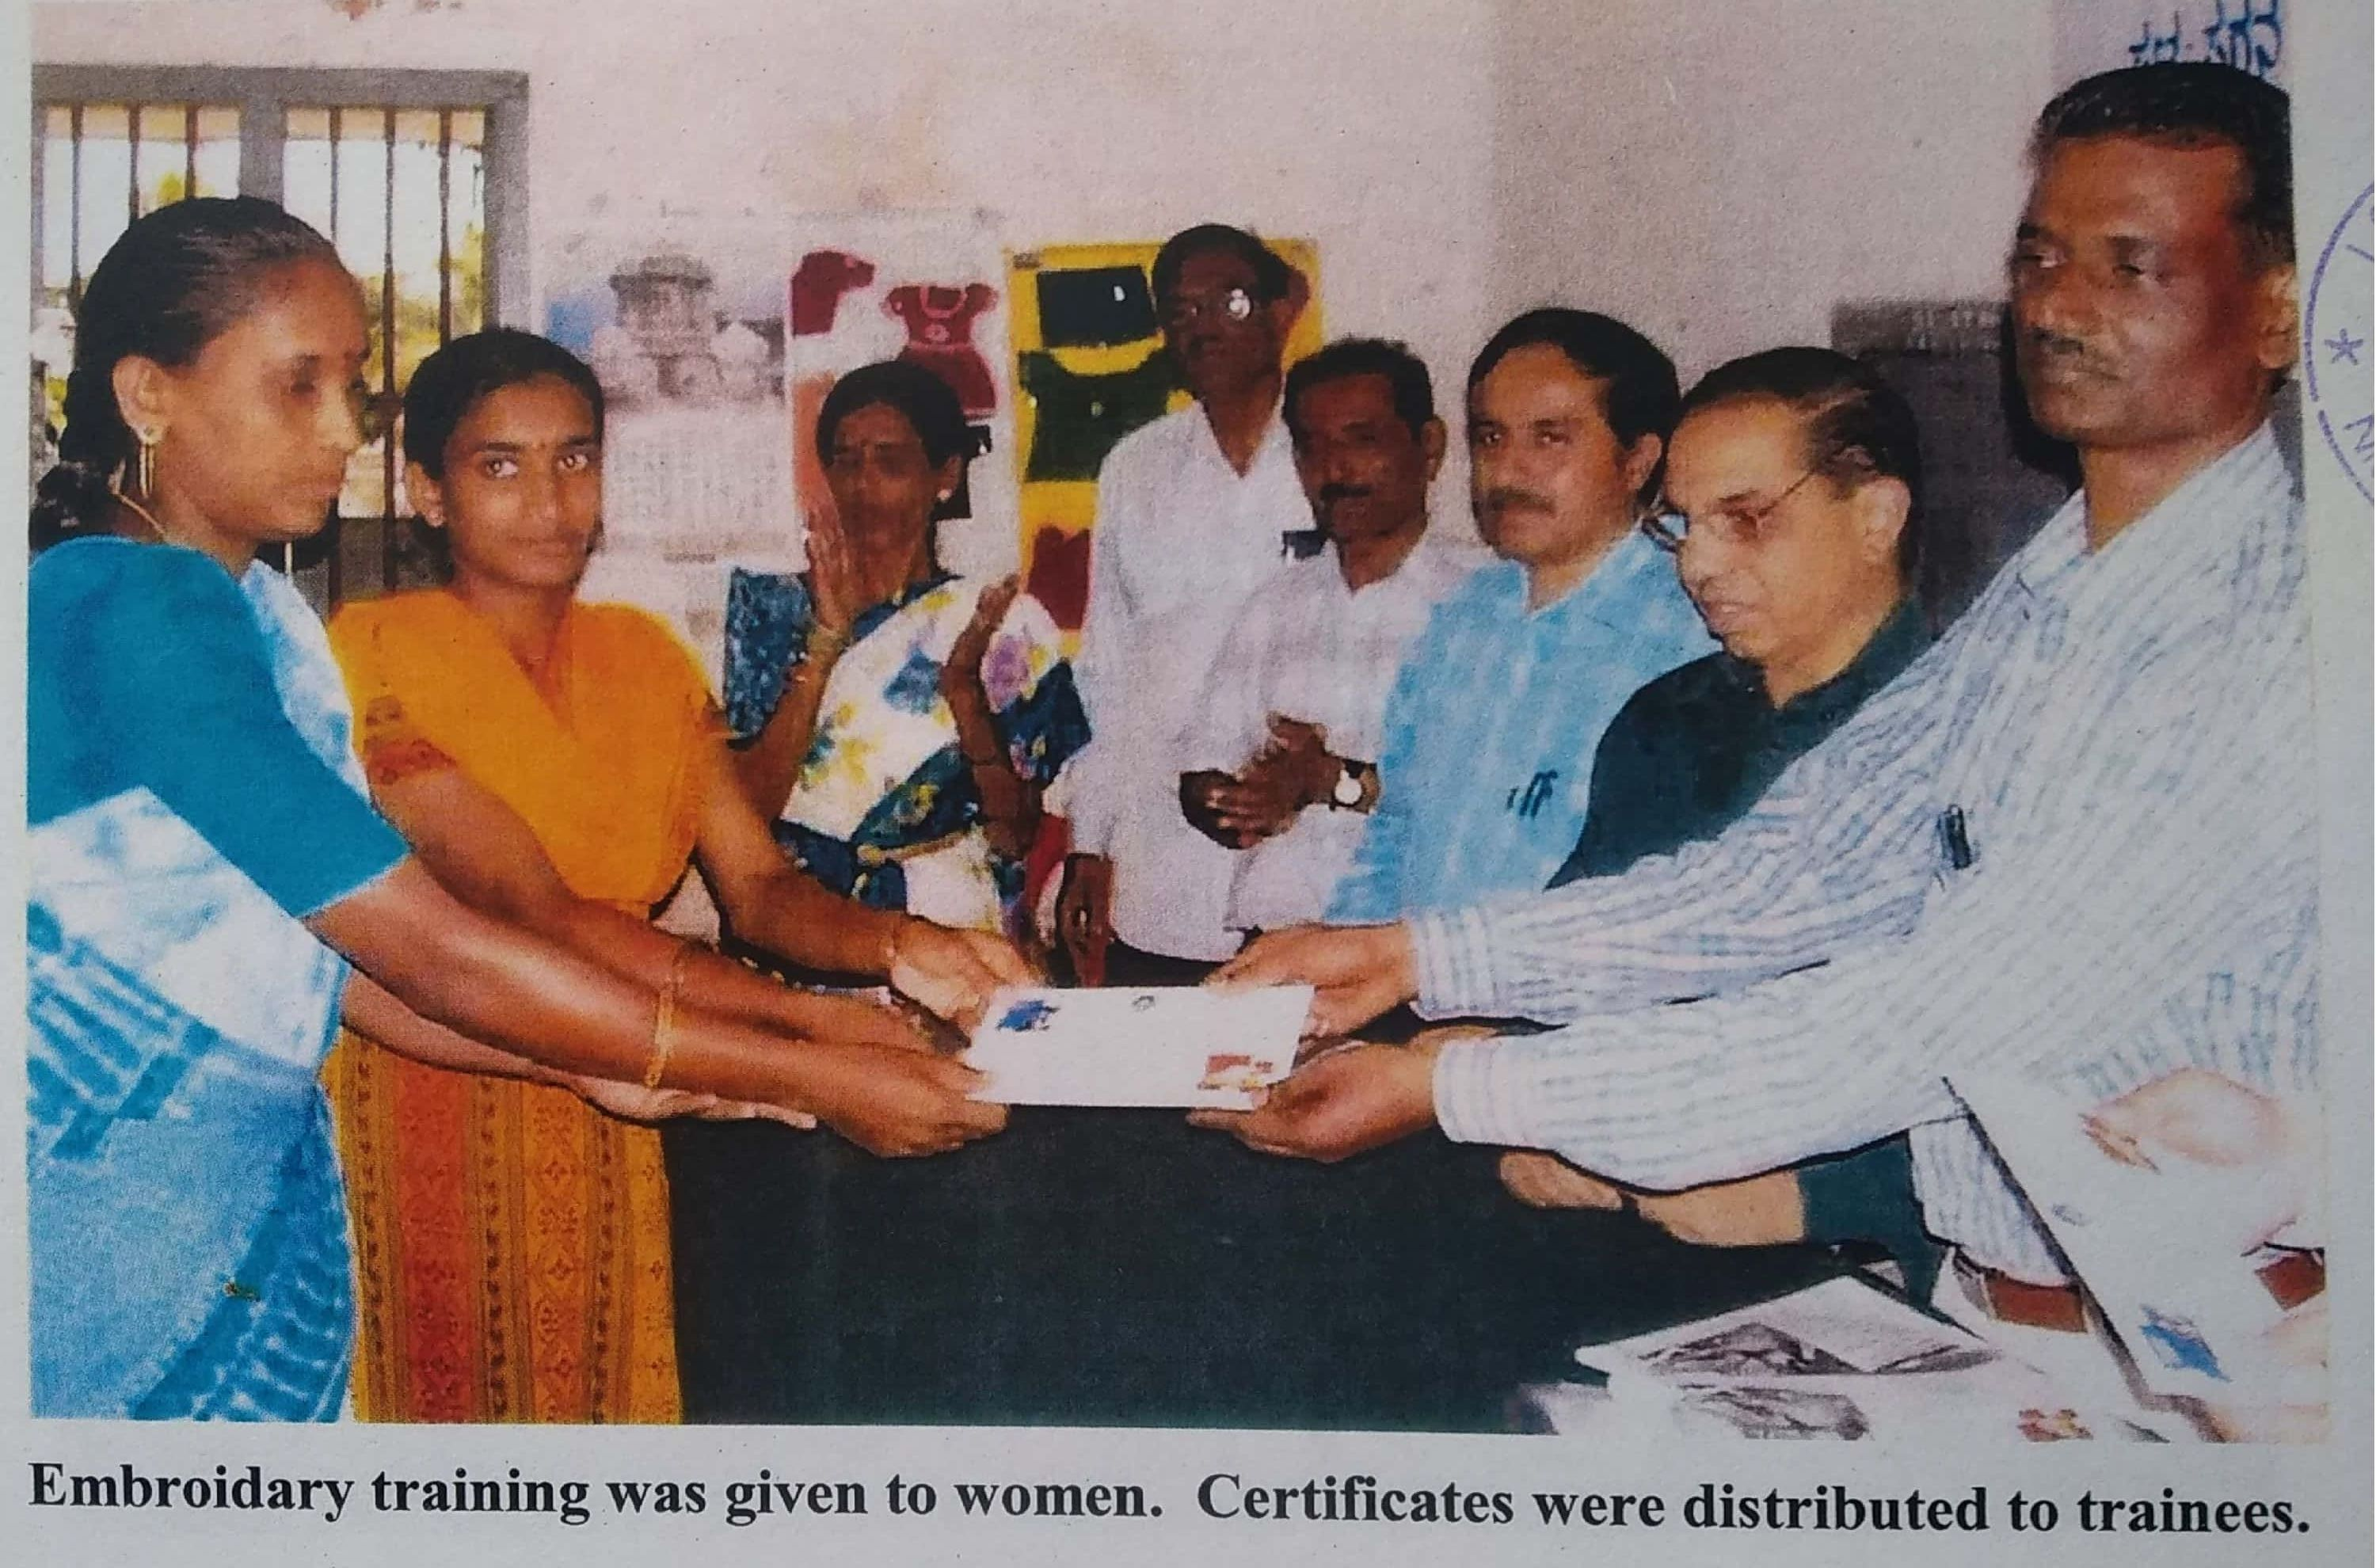 /media/iscerd/Embroidary_Training_certificates_were_isued_to_trainees_by_ISCERD.jpg